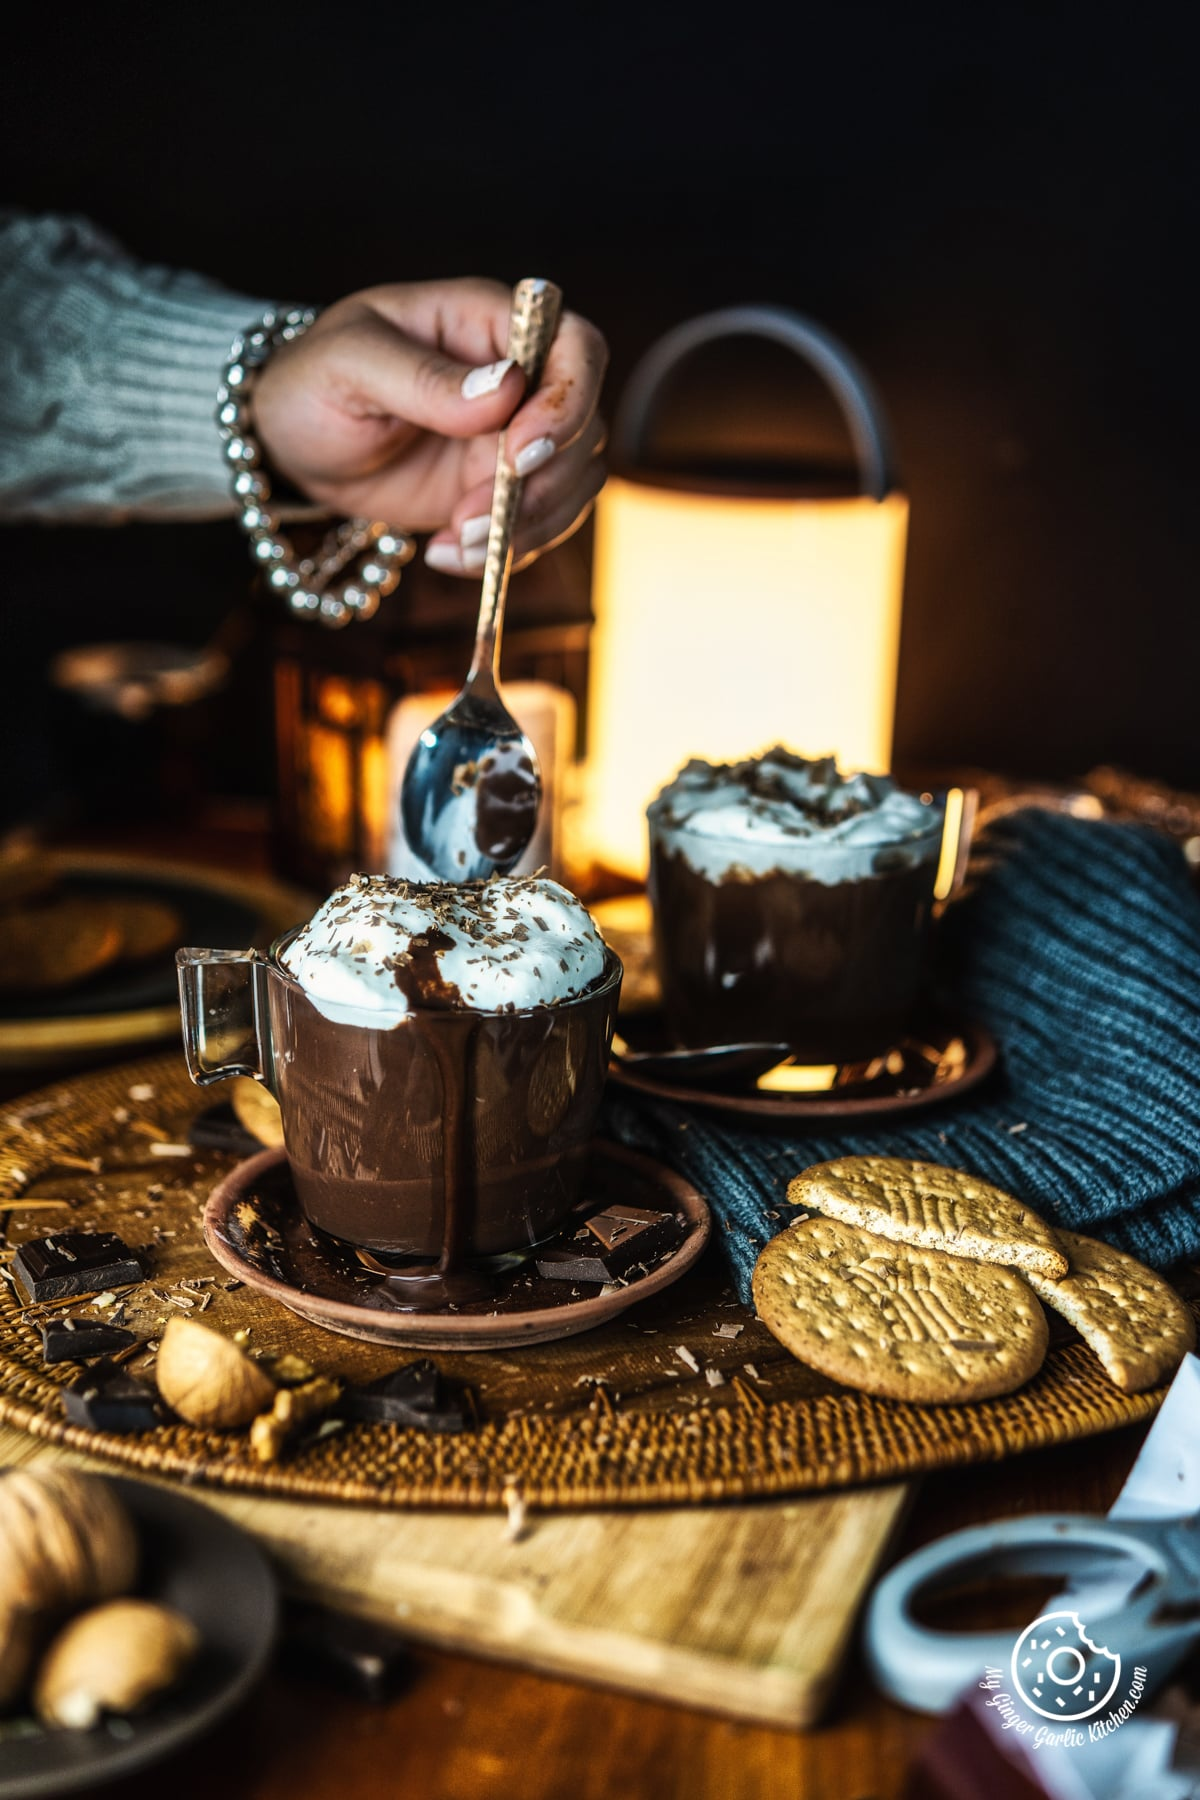 a women holing a spoon over Italian Hot Chocolate mug topped with whipped cream and chocolate shavings